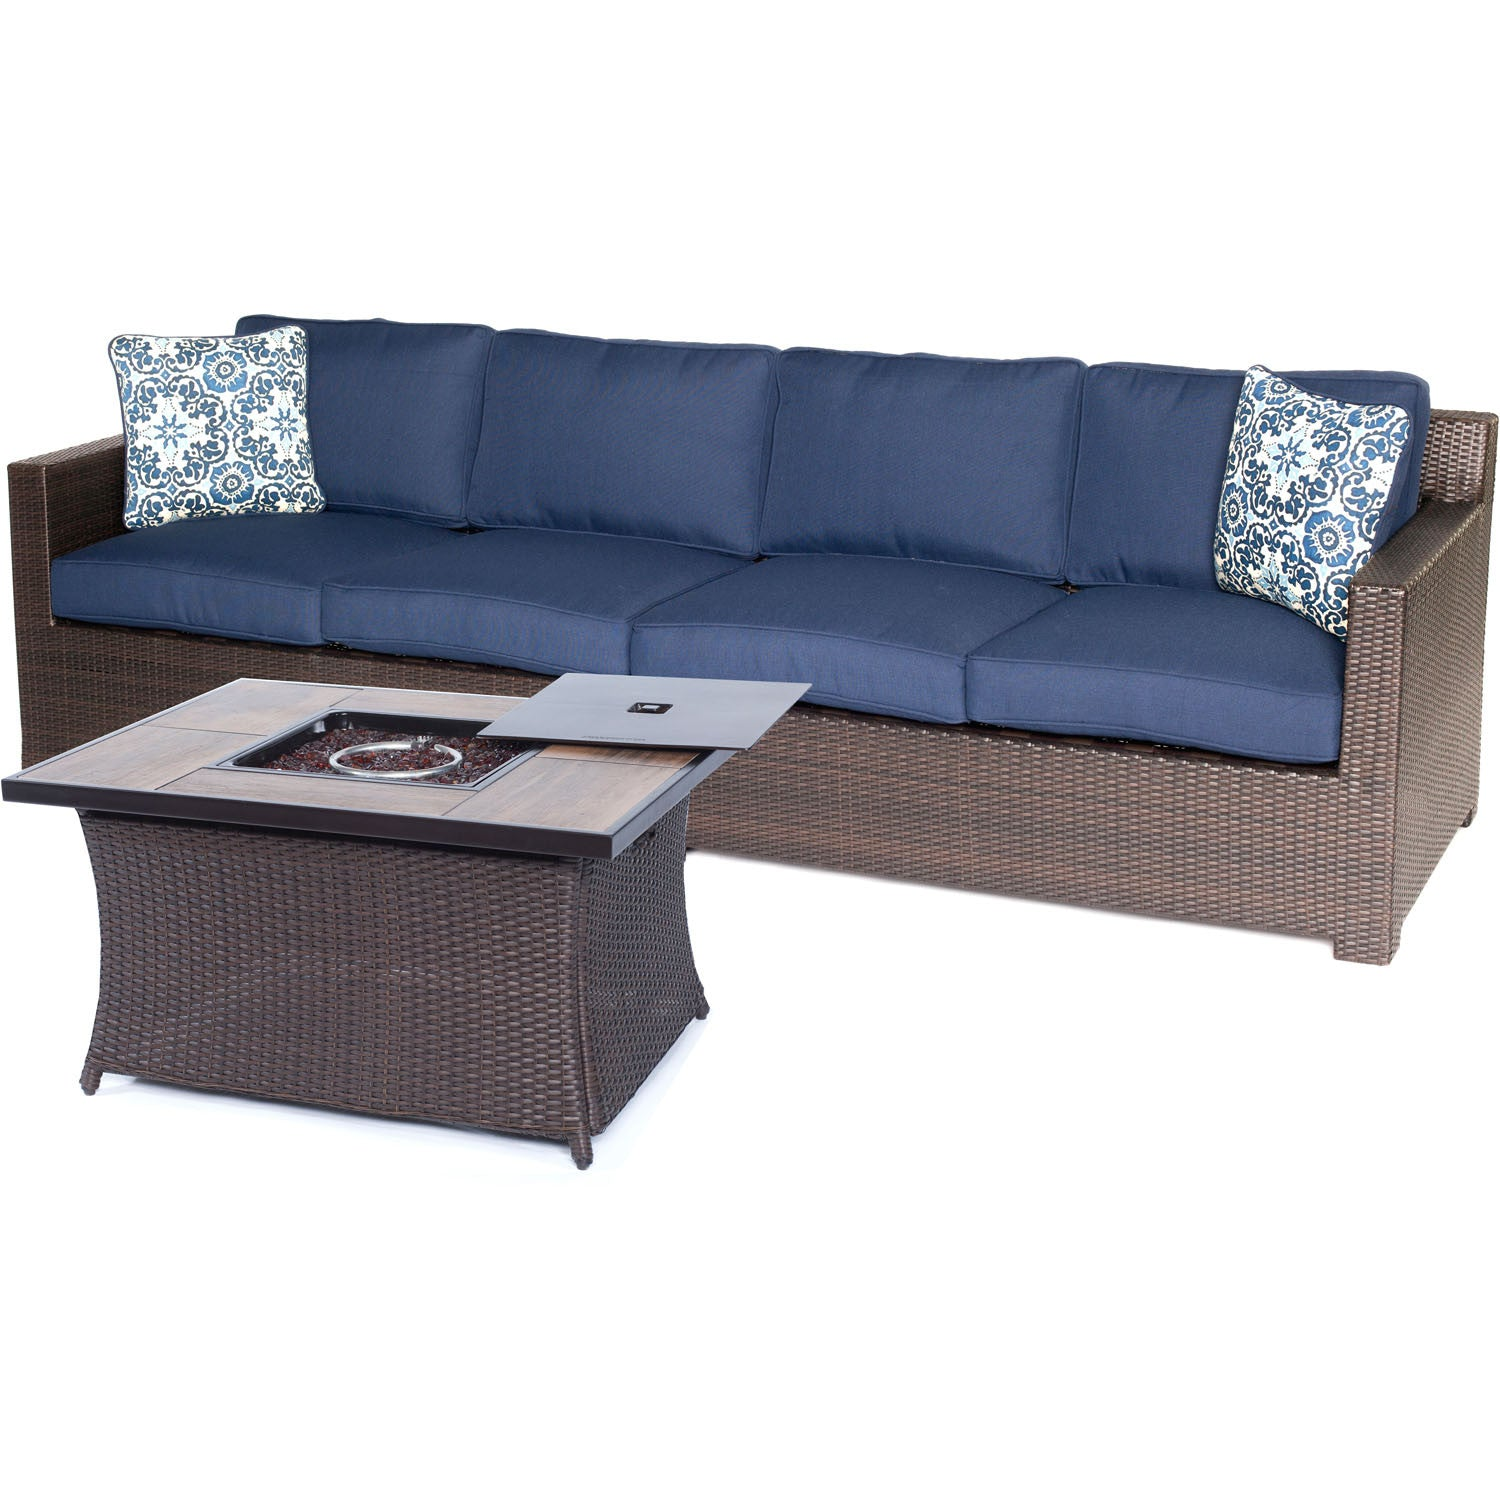 Surprising Metro3Pc Fire Pit Set Loveseat Woven Fire Pit Coffee Table With Wood Grain Tile Metro3Pcfp Nvy A Brown Navy Unemploymentrelief Wooden Chair Designs For Living Room Unemploymentrelieforg